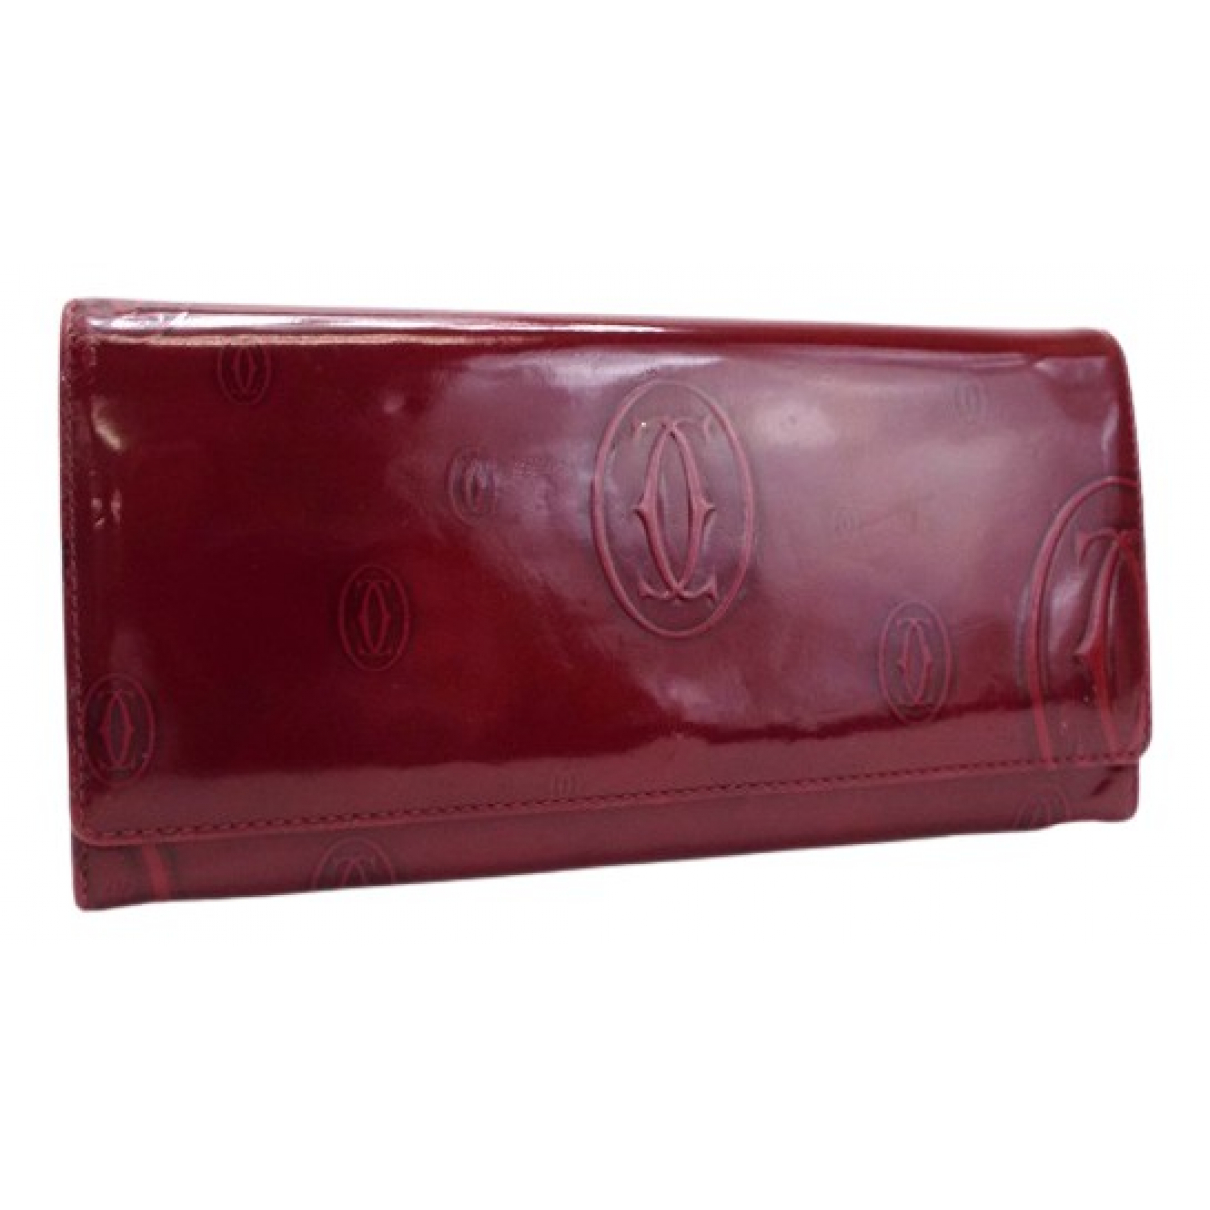 Cartier N Burgundy Patent leather wallet for Women N